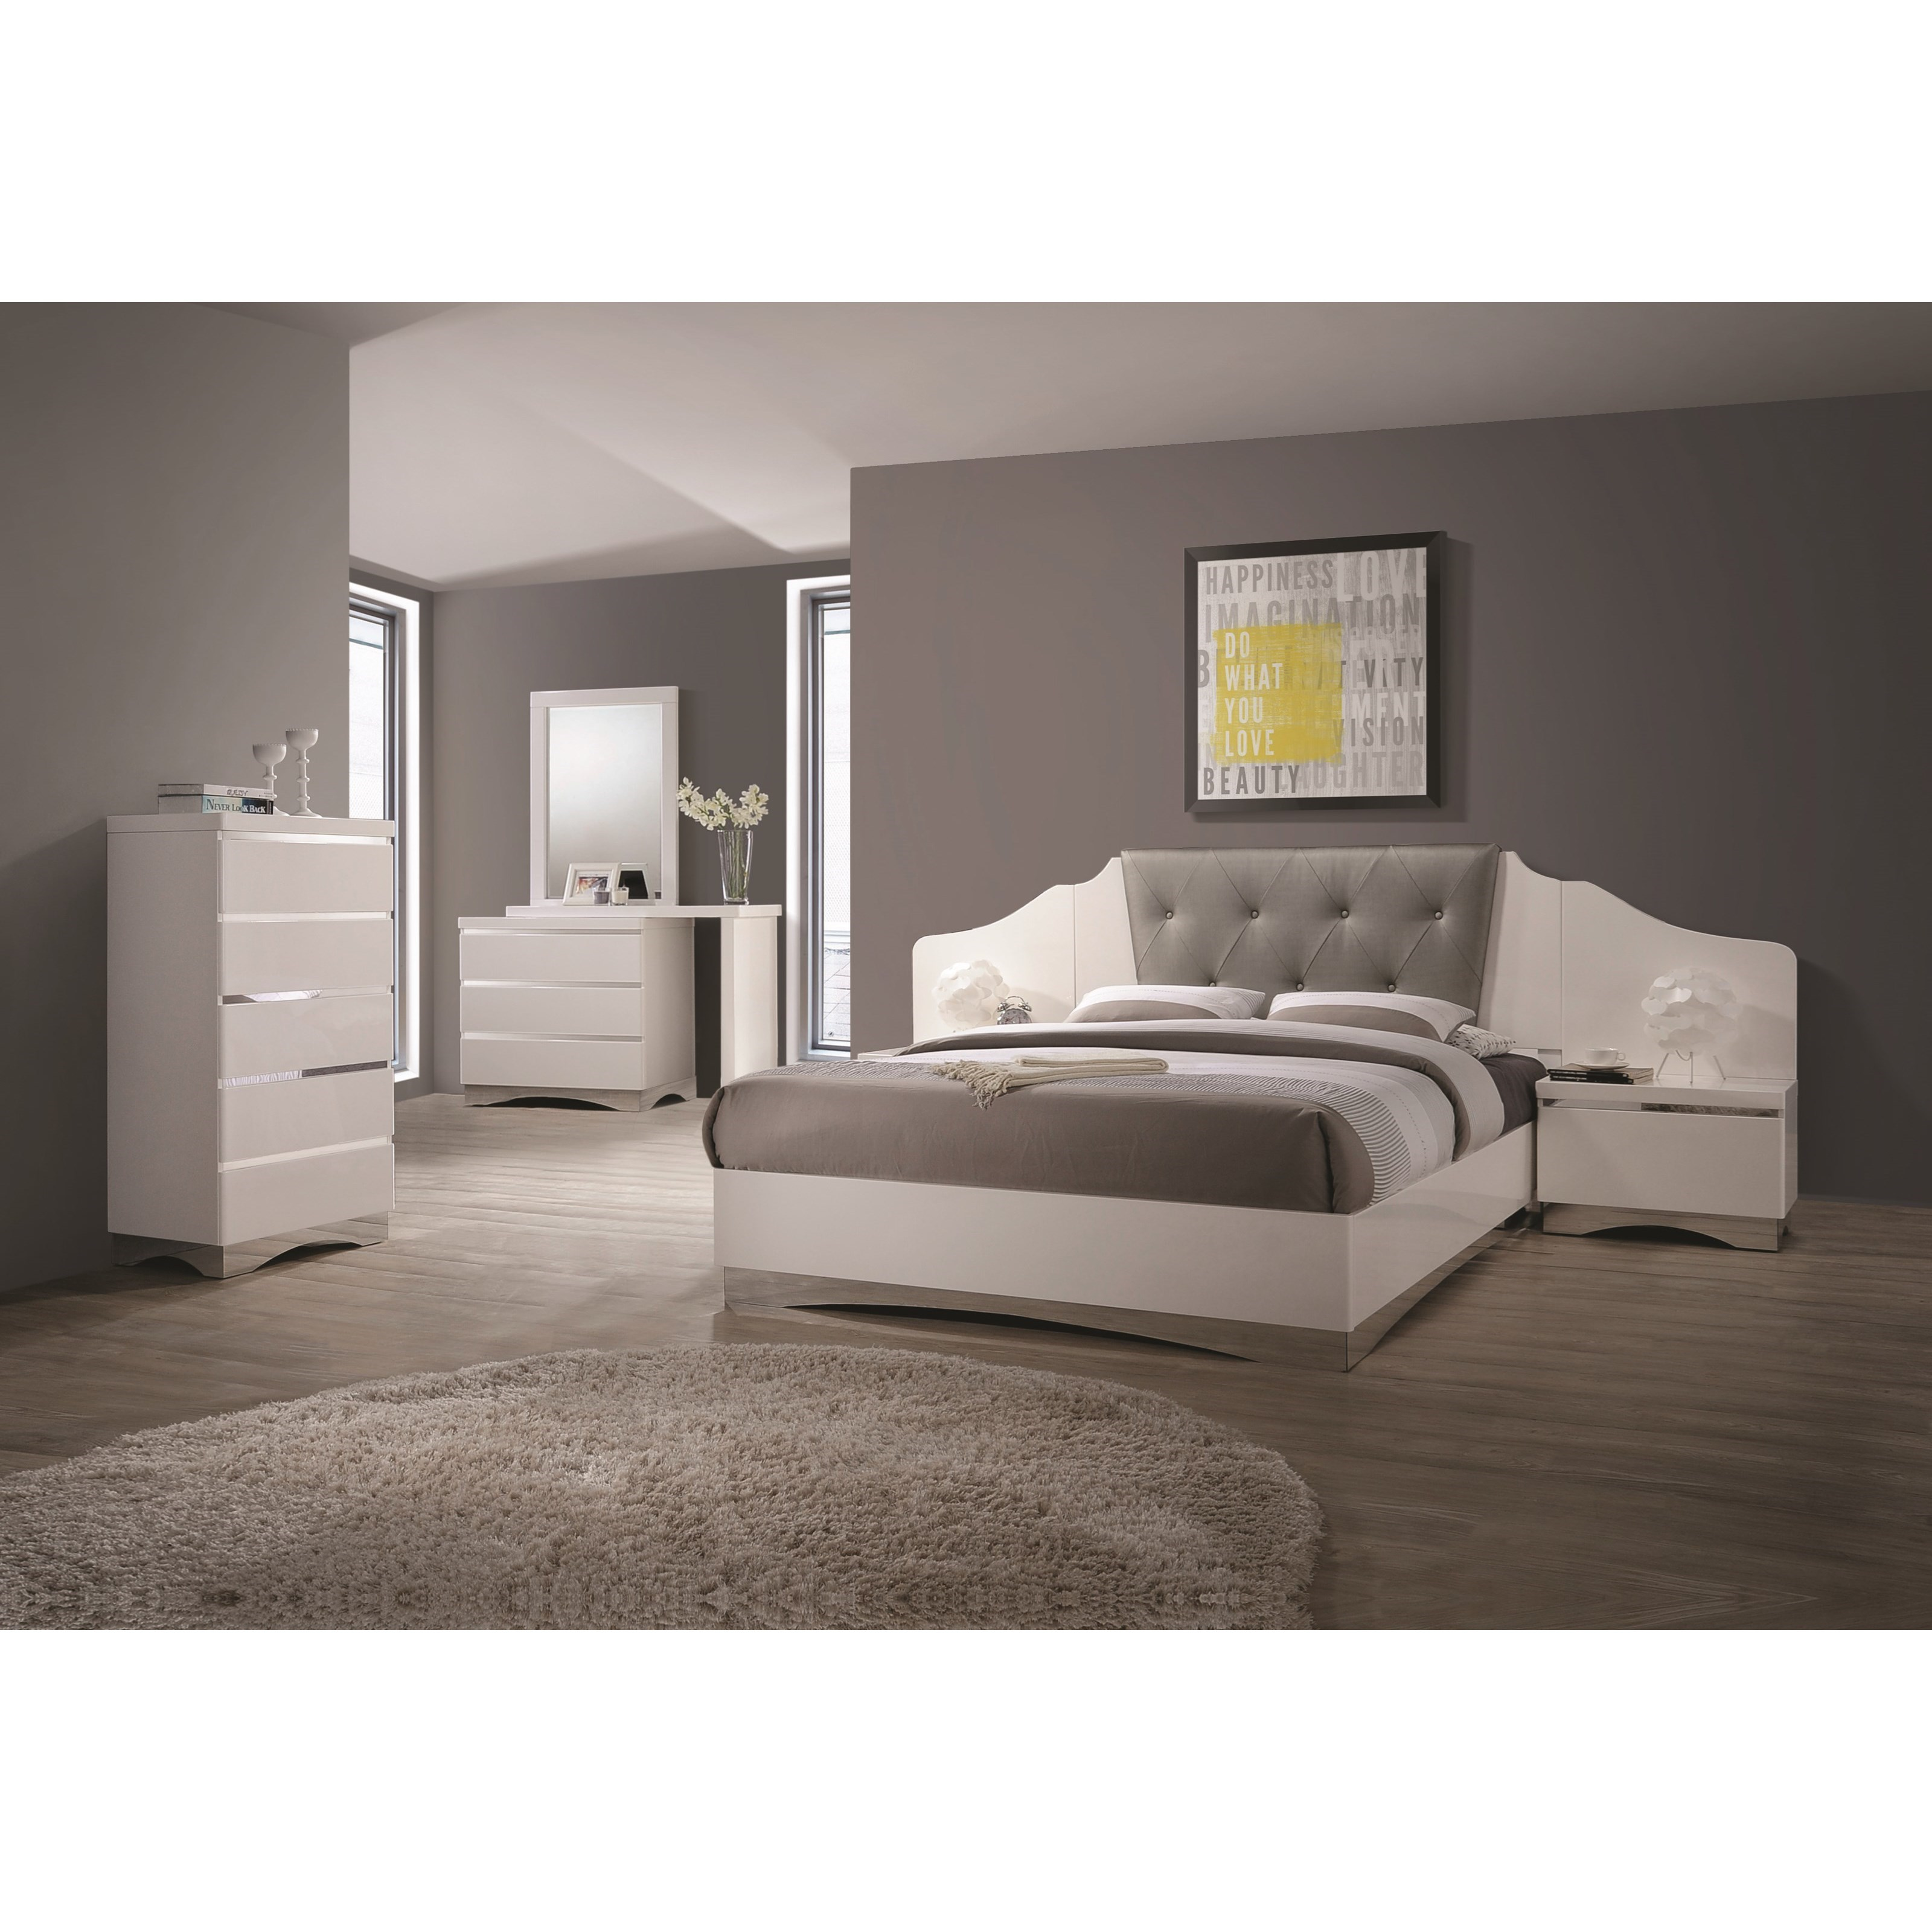 Coaster Alessandro Queen Bedroom Group - Item Number: Q 2050 W Bedroom Group